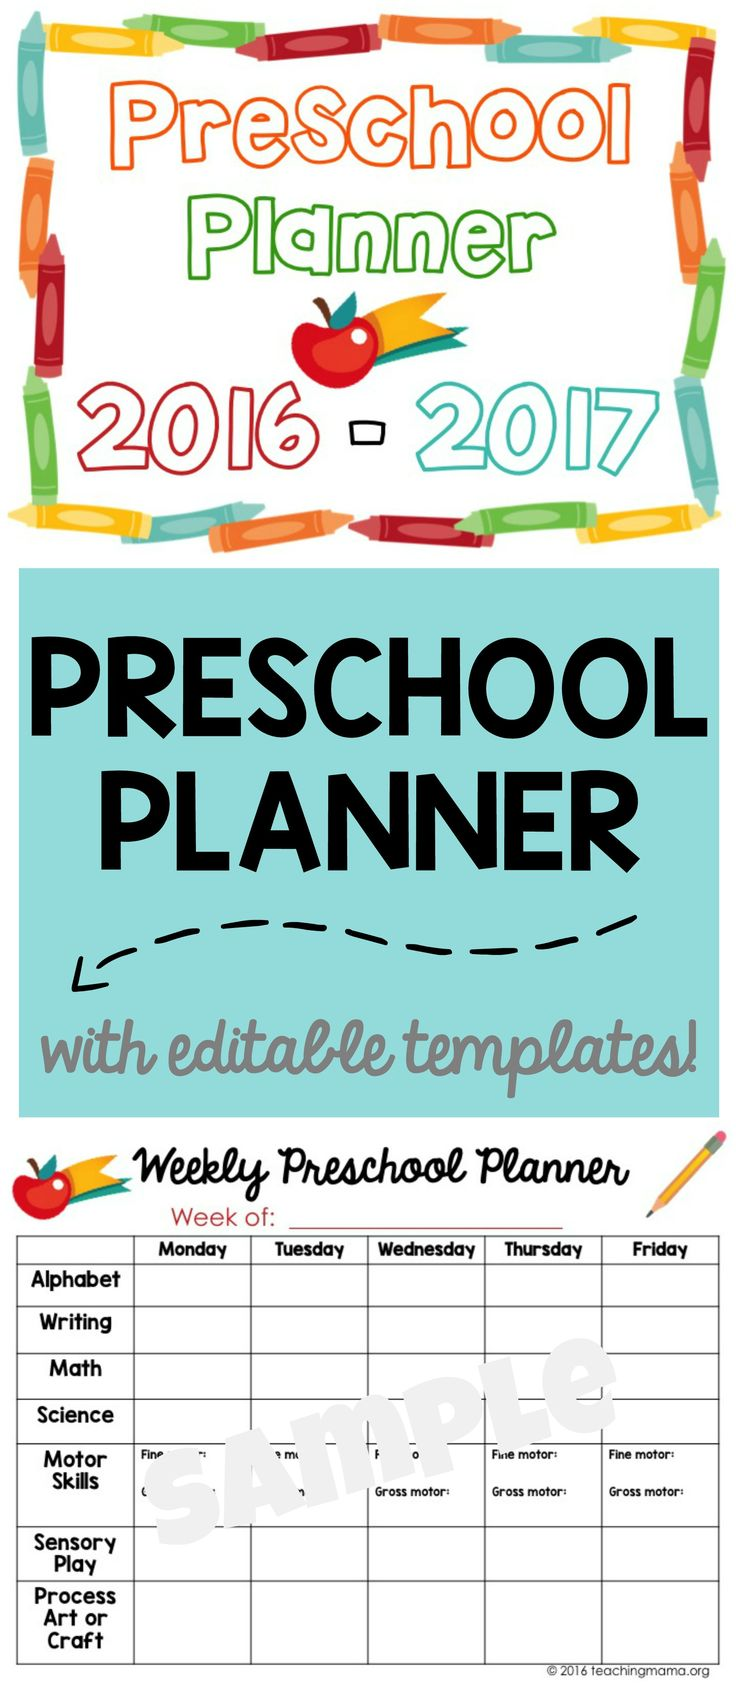 91 best Early Childhood Education images on Pinterest | Activities ...